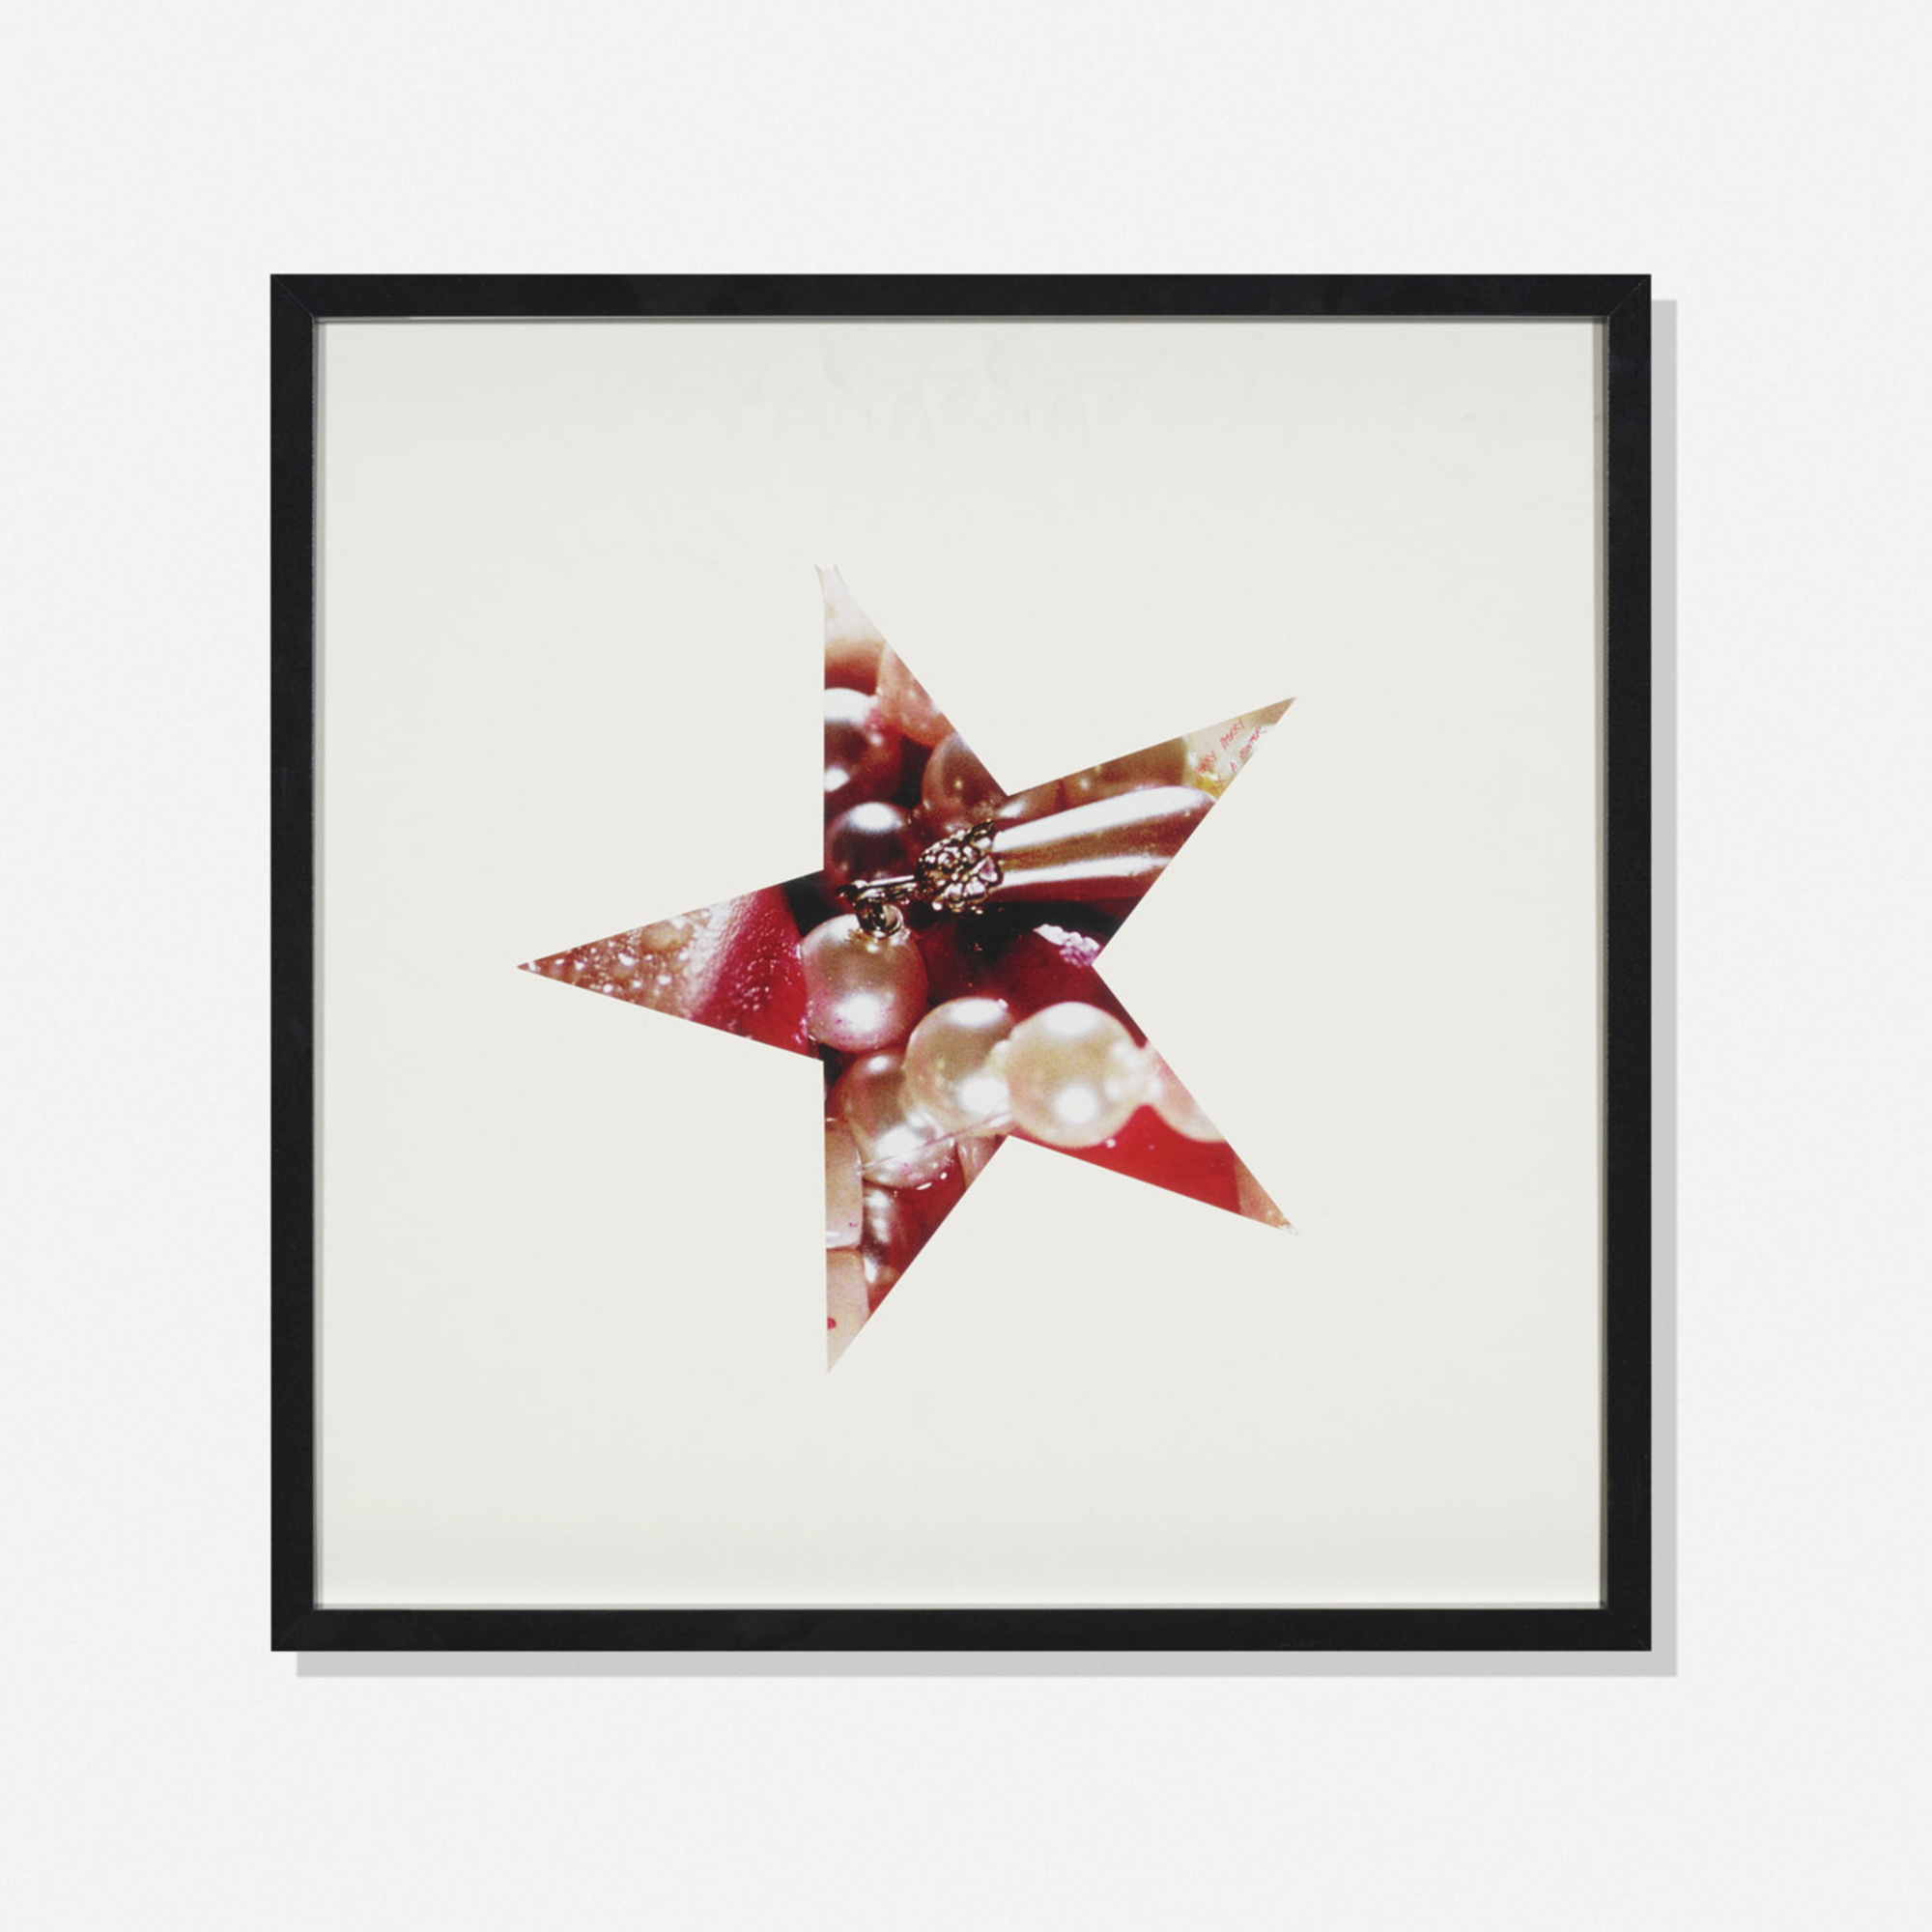 572: Marilyn Minter / Merry Merry Star (1 of 1)